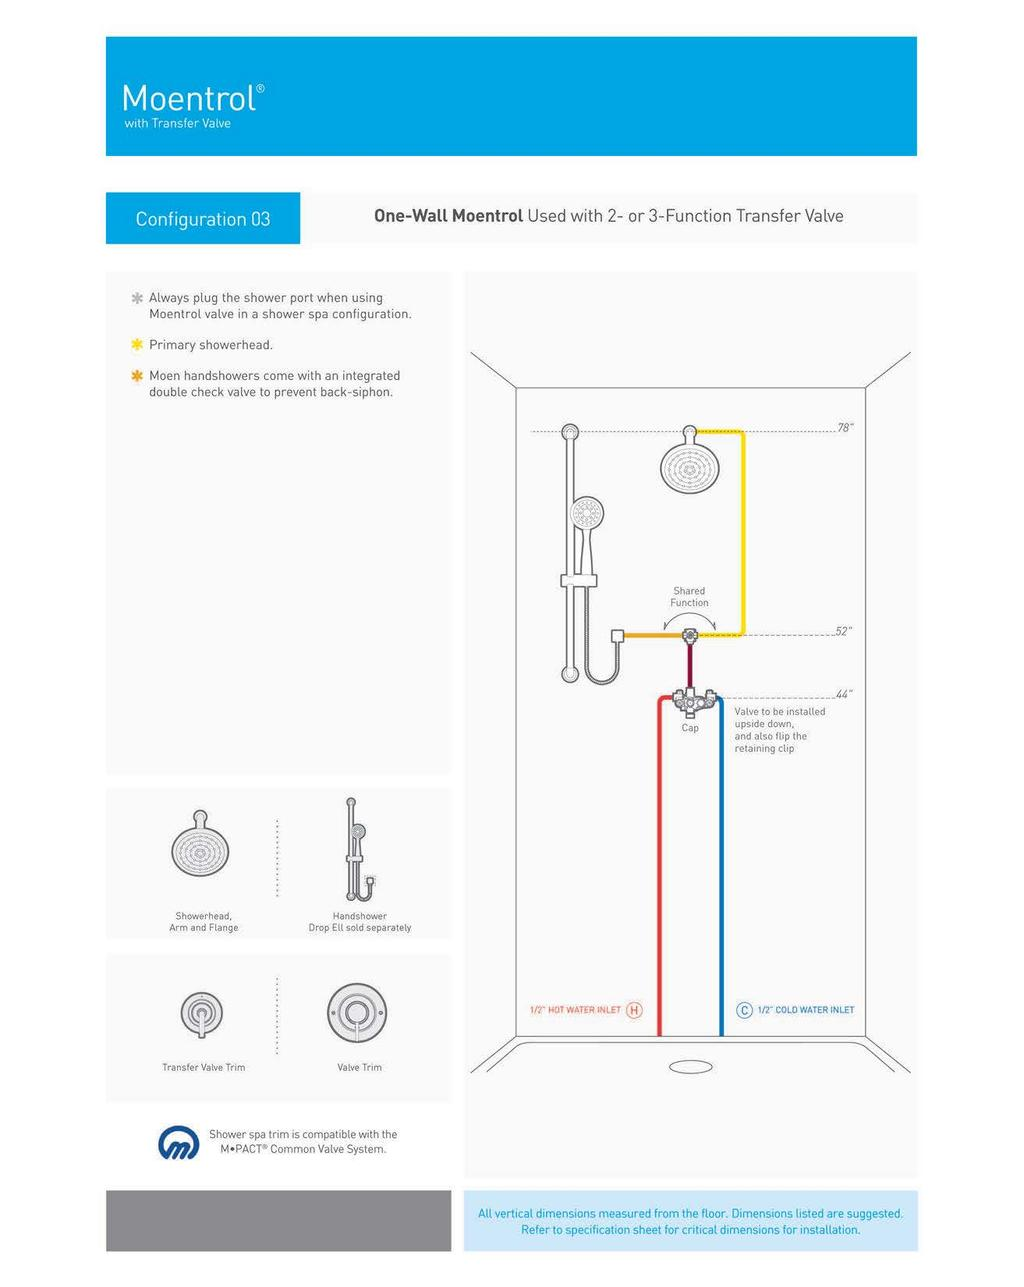 Moen Piping Diagram Wiring Library T987bn Parts List And Ereplacementpartscom Install With Confidence Questions Pdf Kitchen Faucets